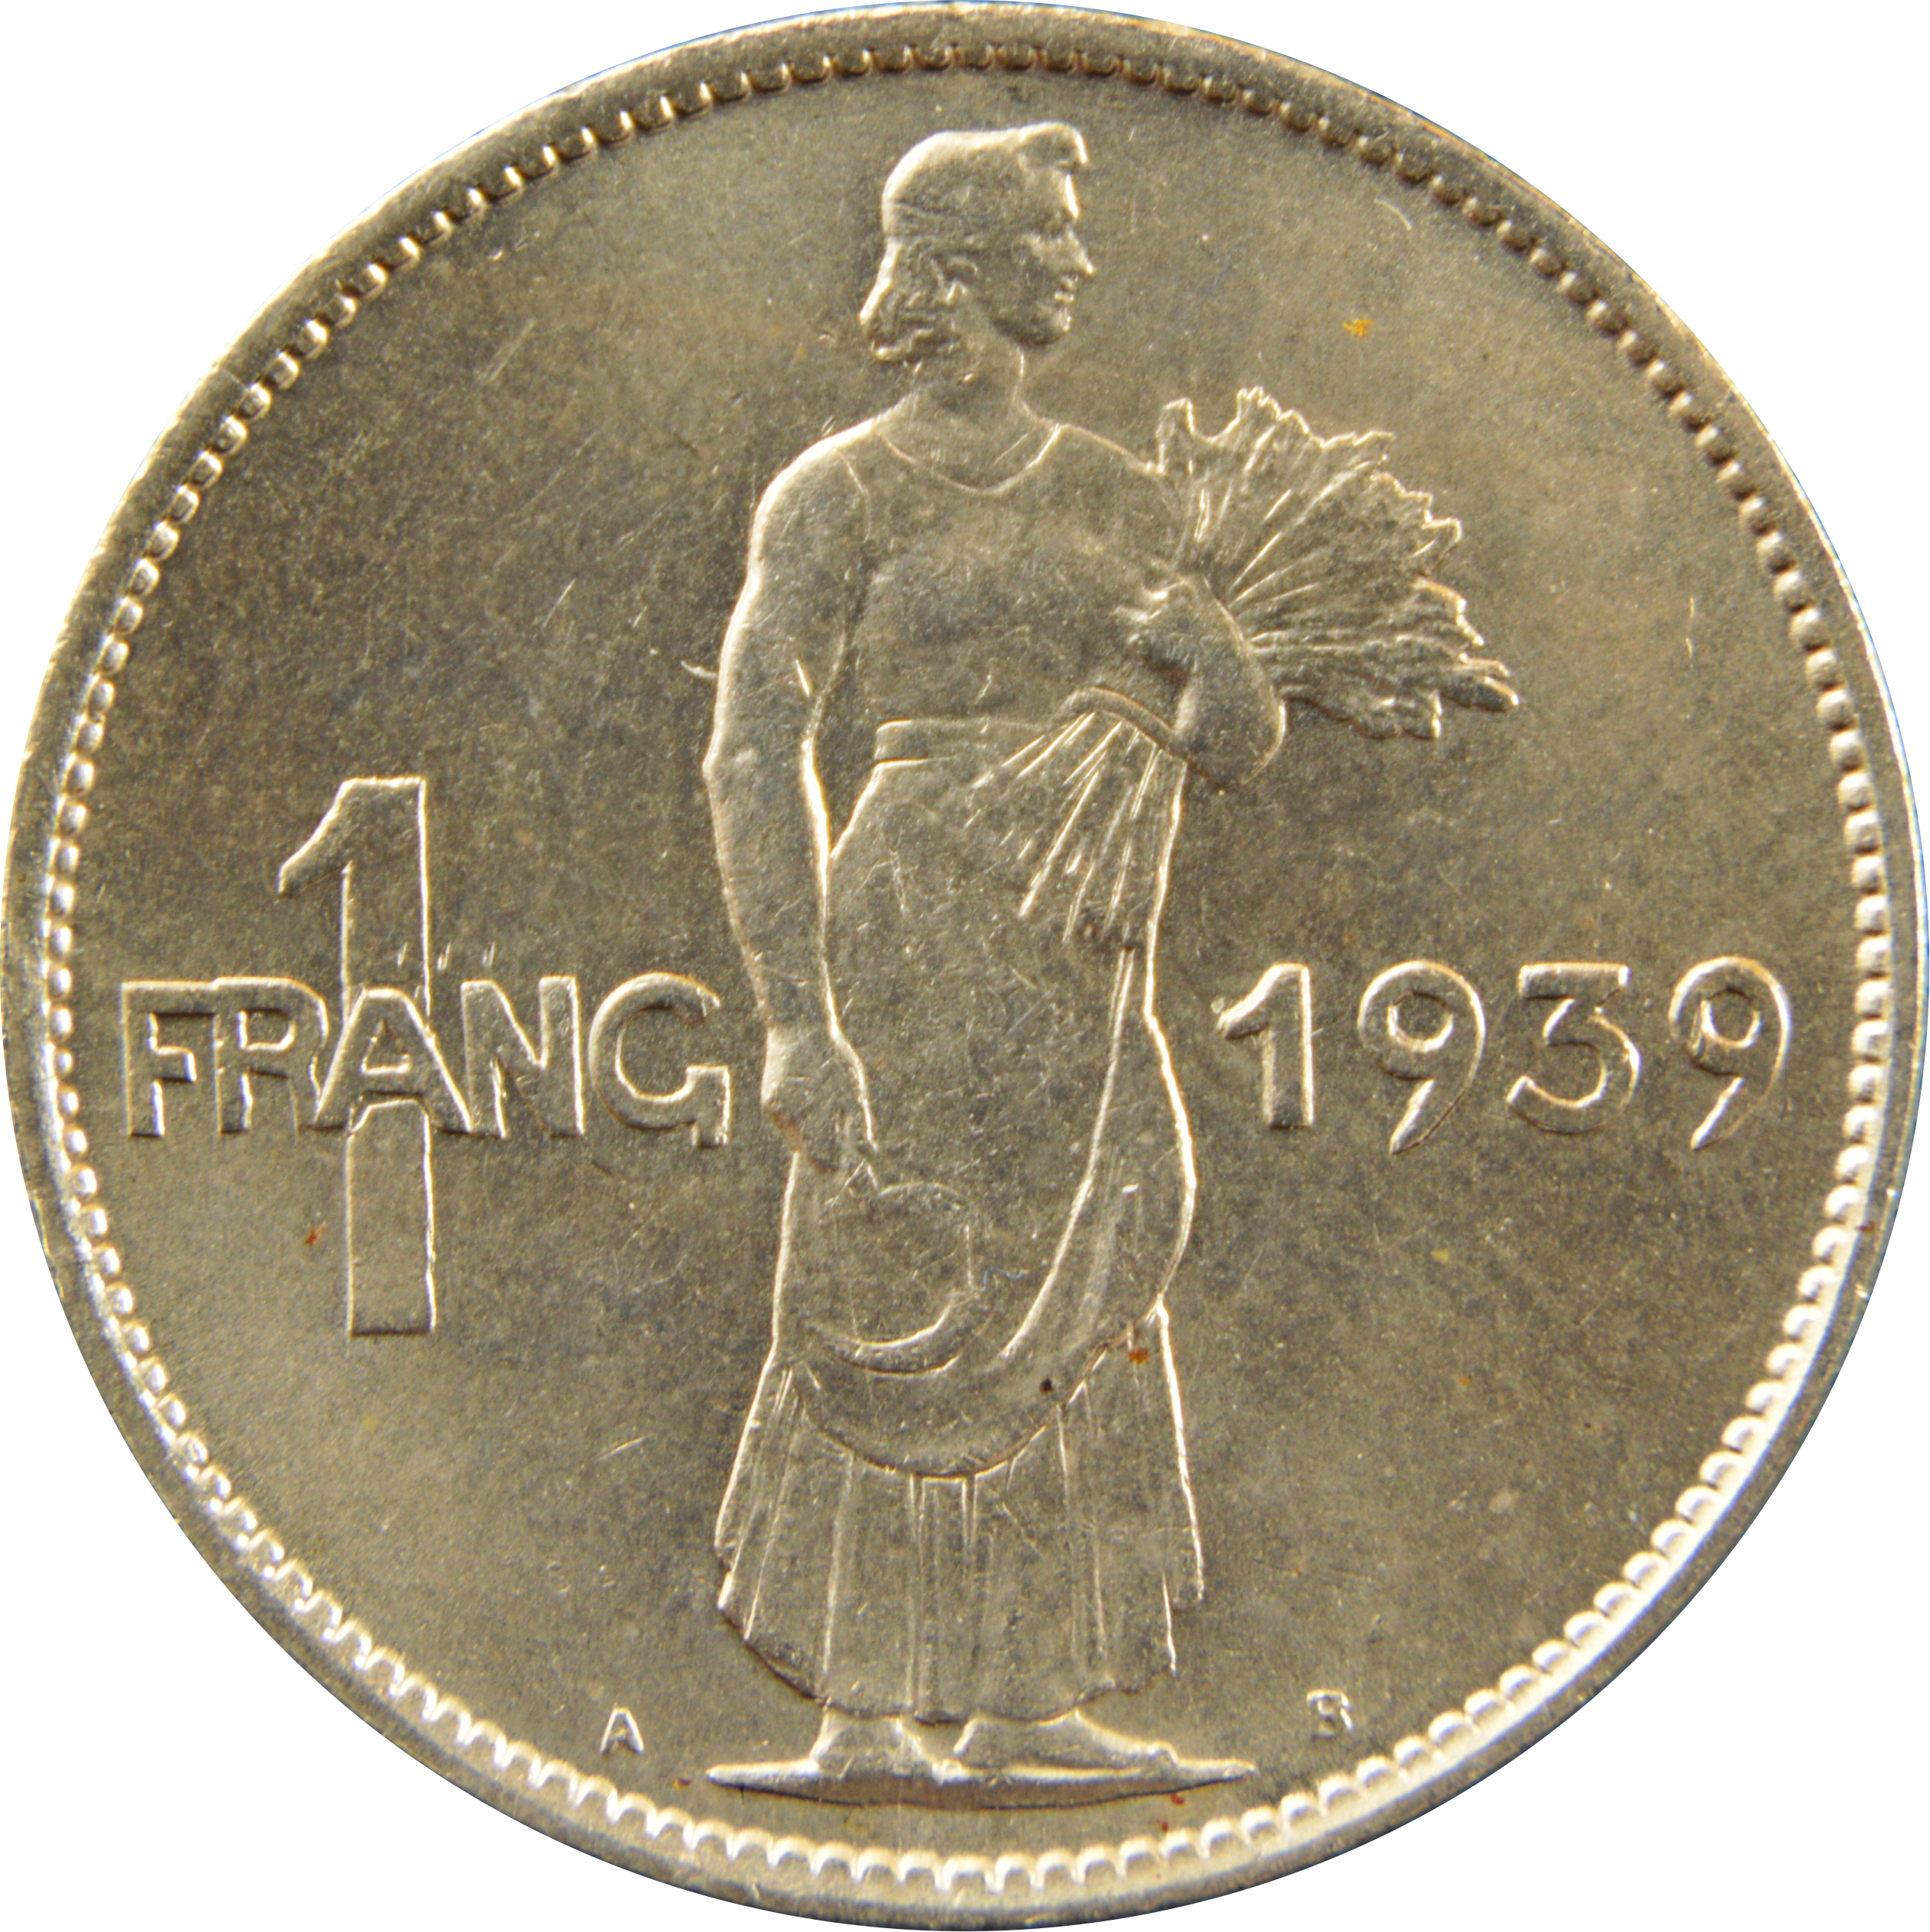 1 franc charlotte luxembourg numista for France francs